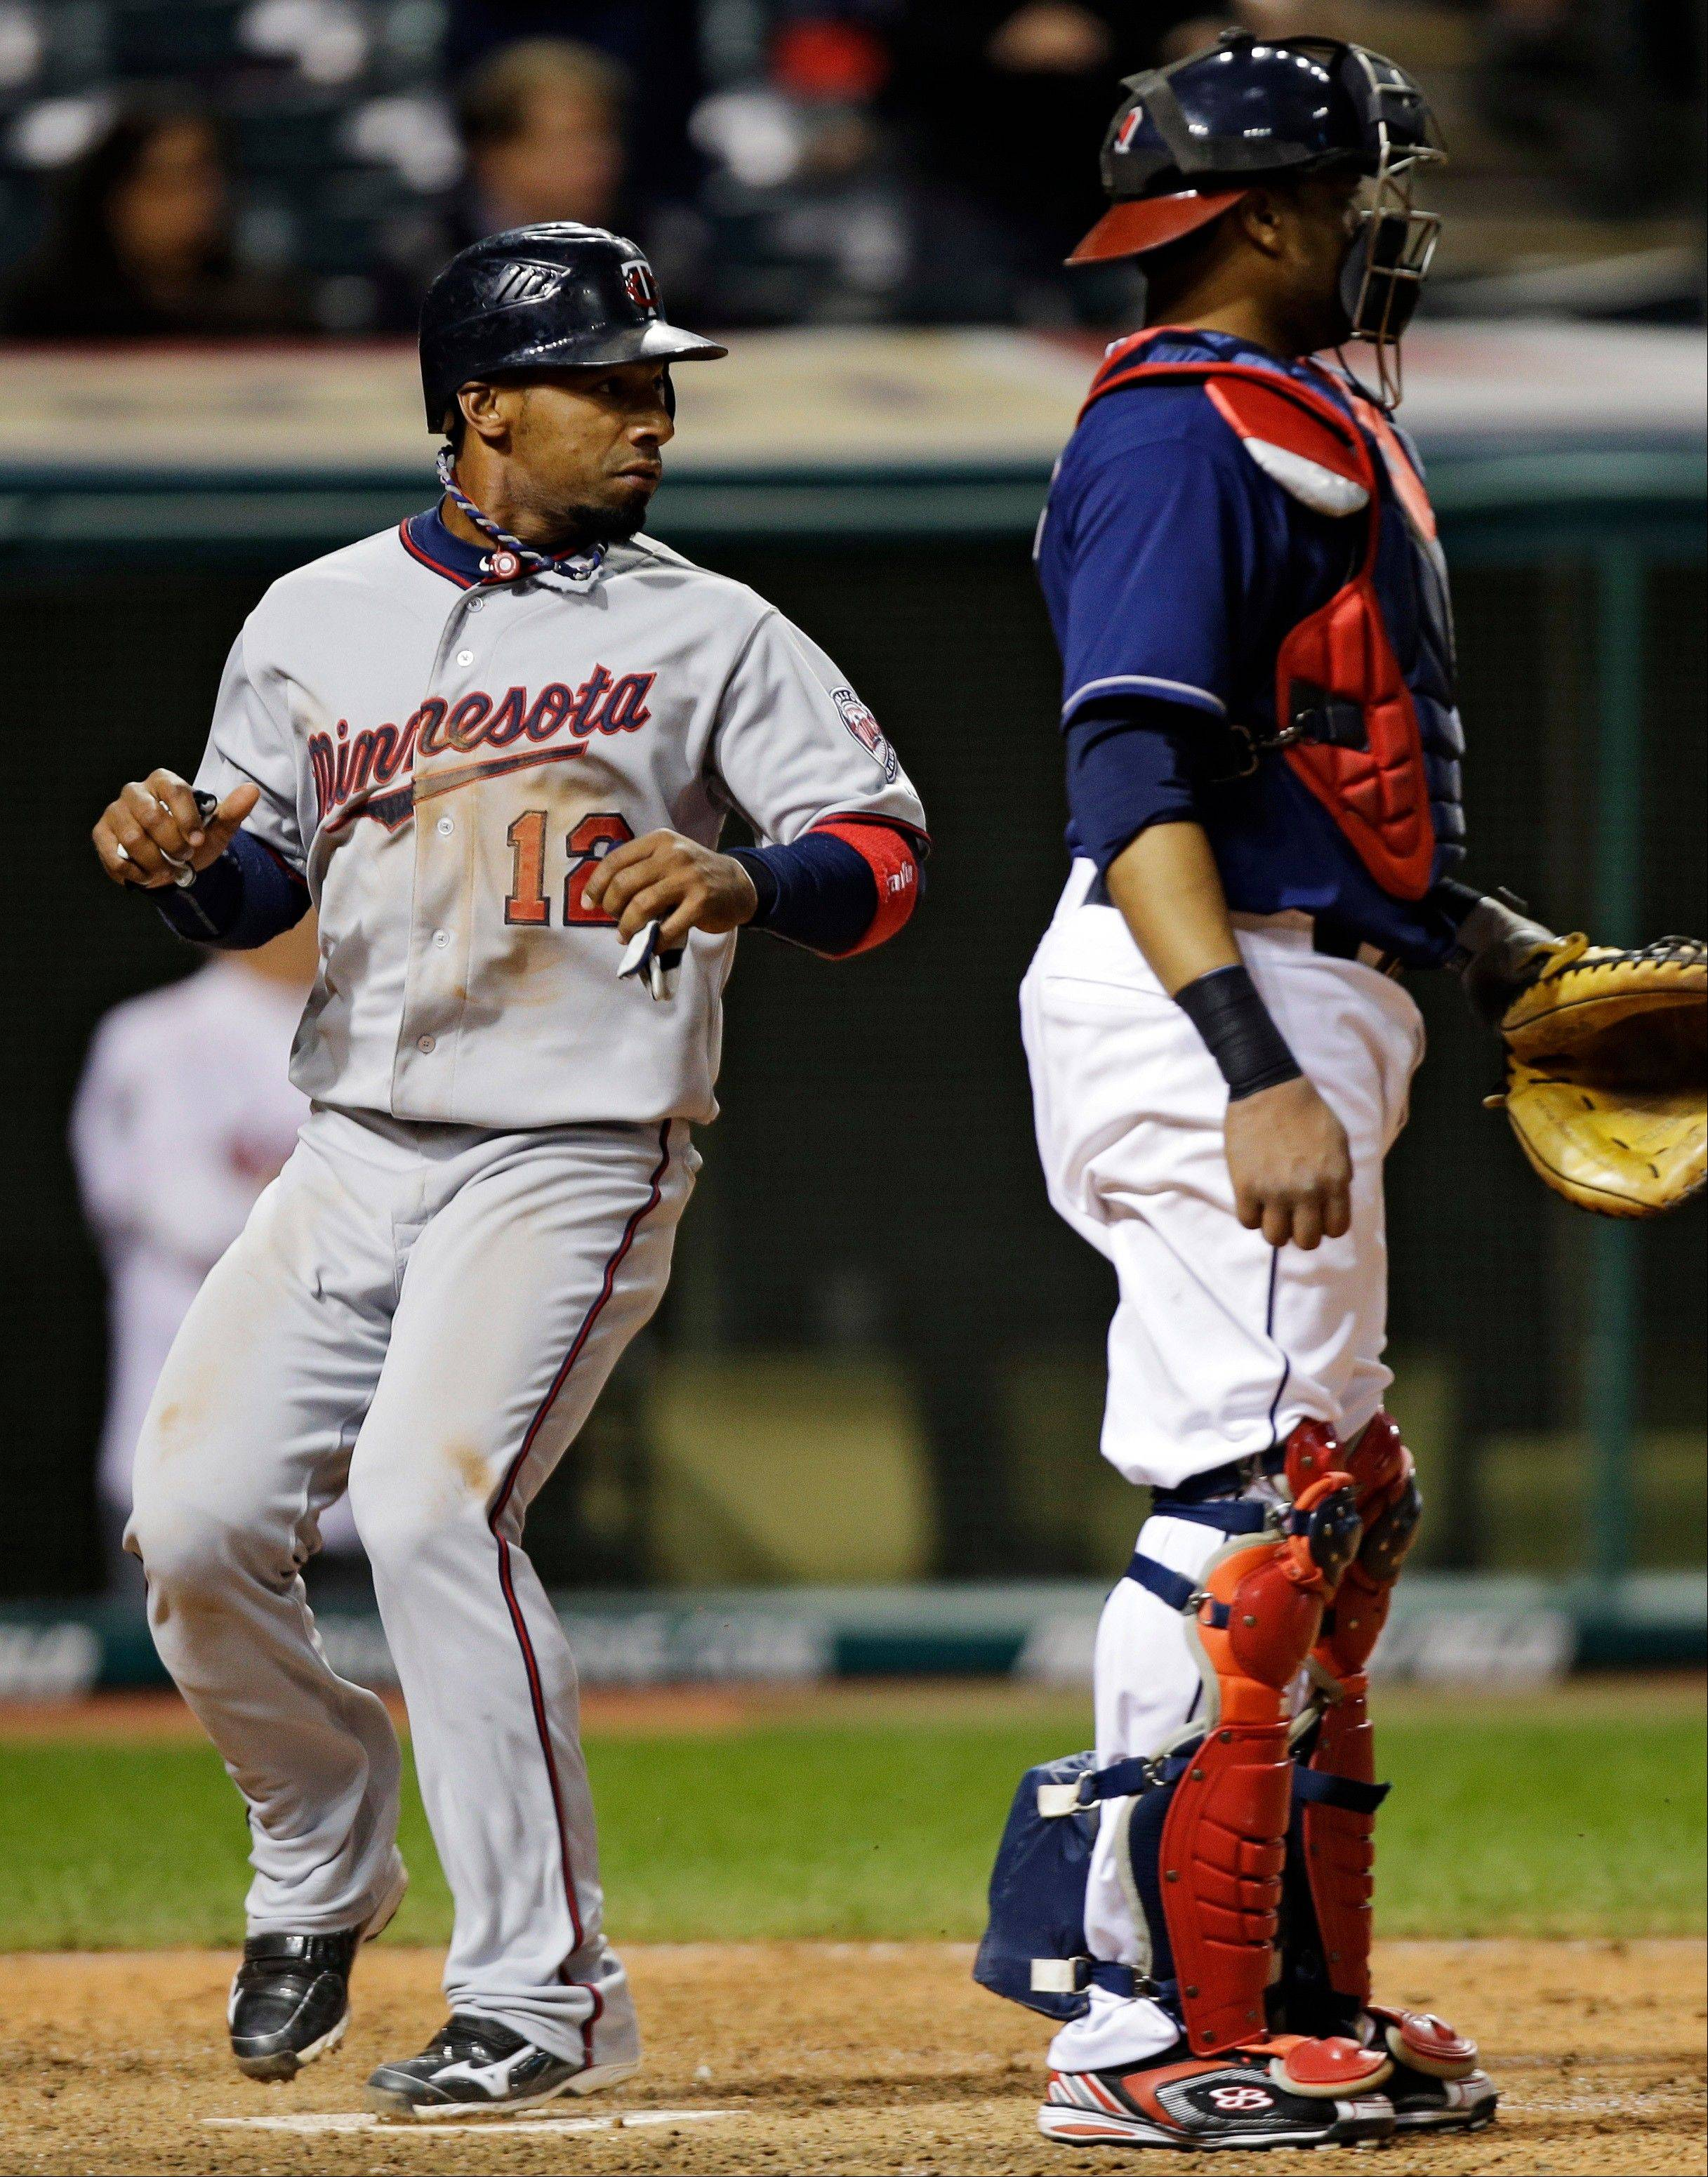 Minnesota's Alexi Casilla and Indians catcher Carlos Santana look toward third base after Casilla scored on a single by Pedro Florimon in the 12th inning Tuesday in Cleveland.